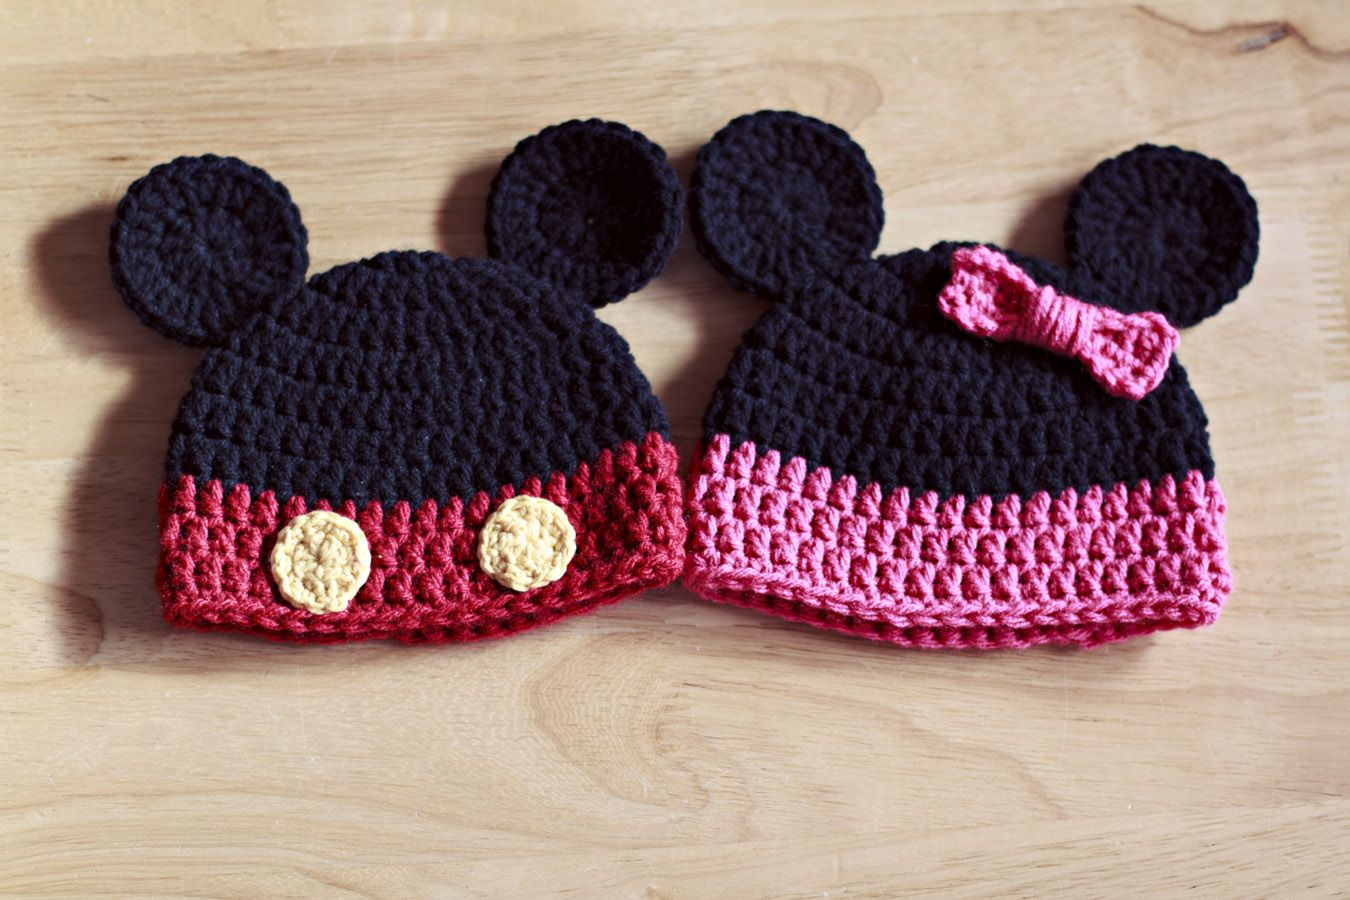 Mickey/Minnie mouse hats knit/crochet/spinning Pinterest